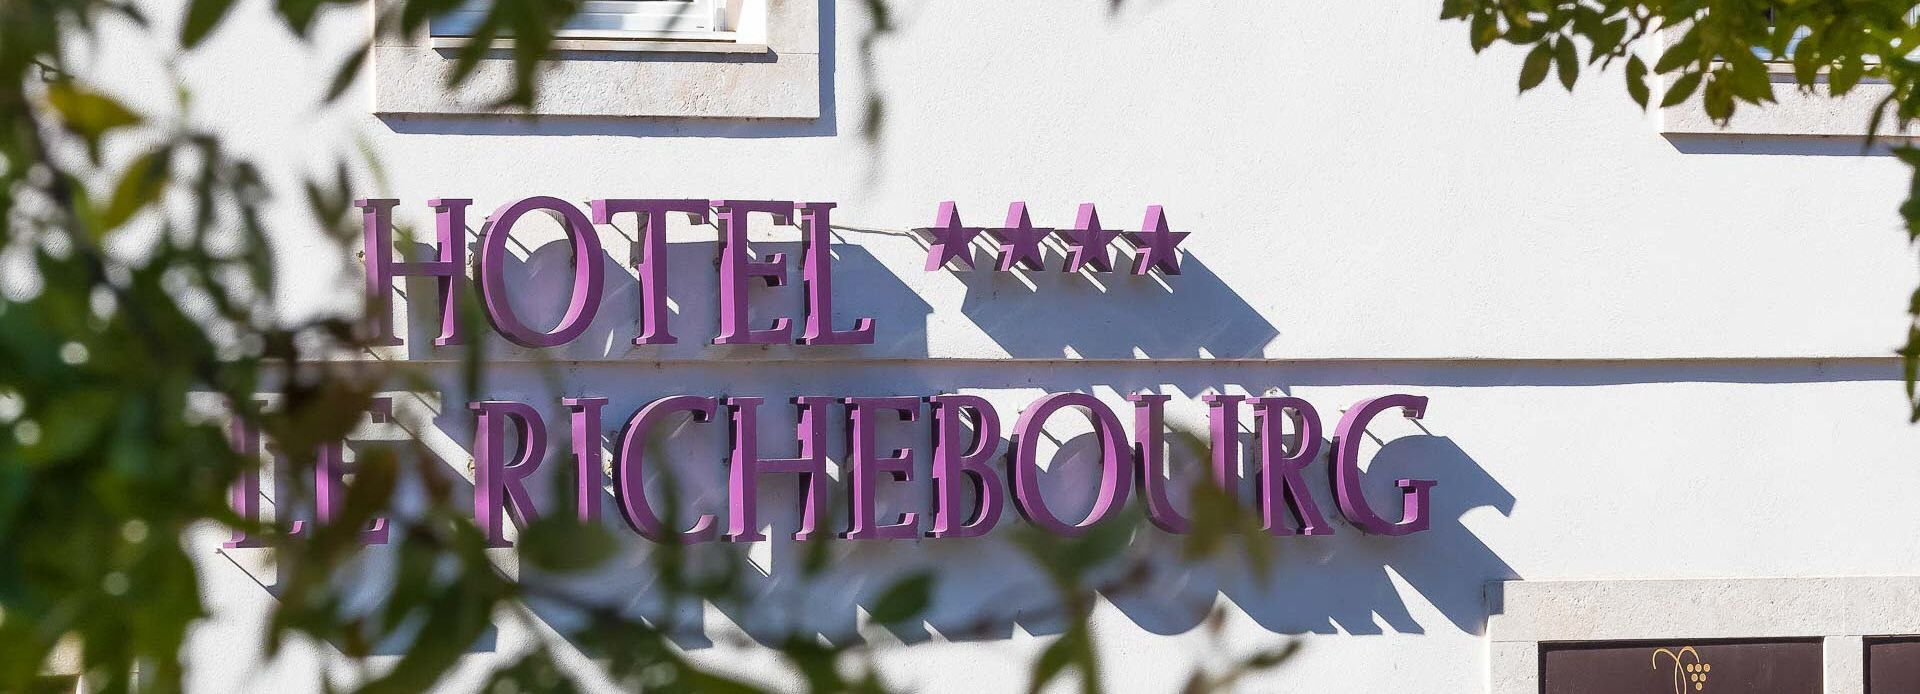 devanture-hotel-le-richebourg